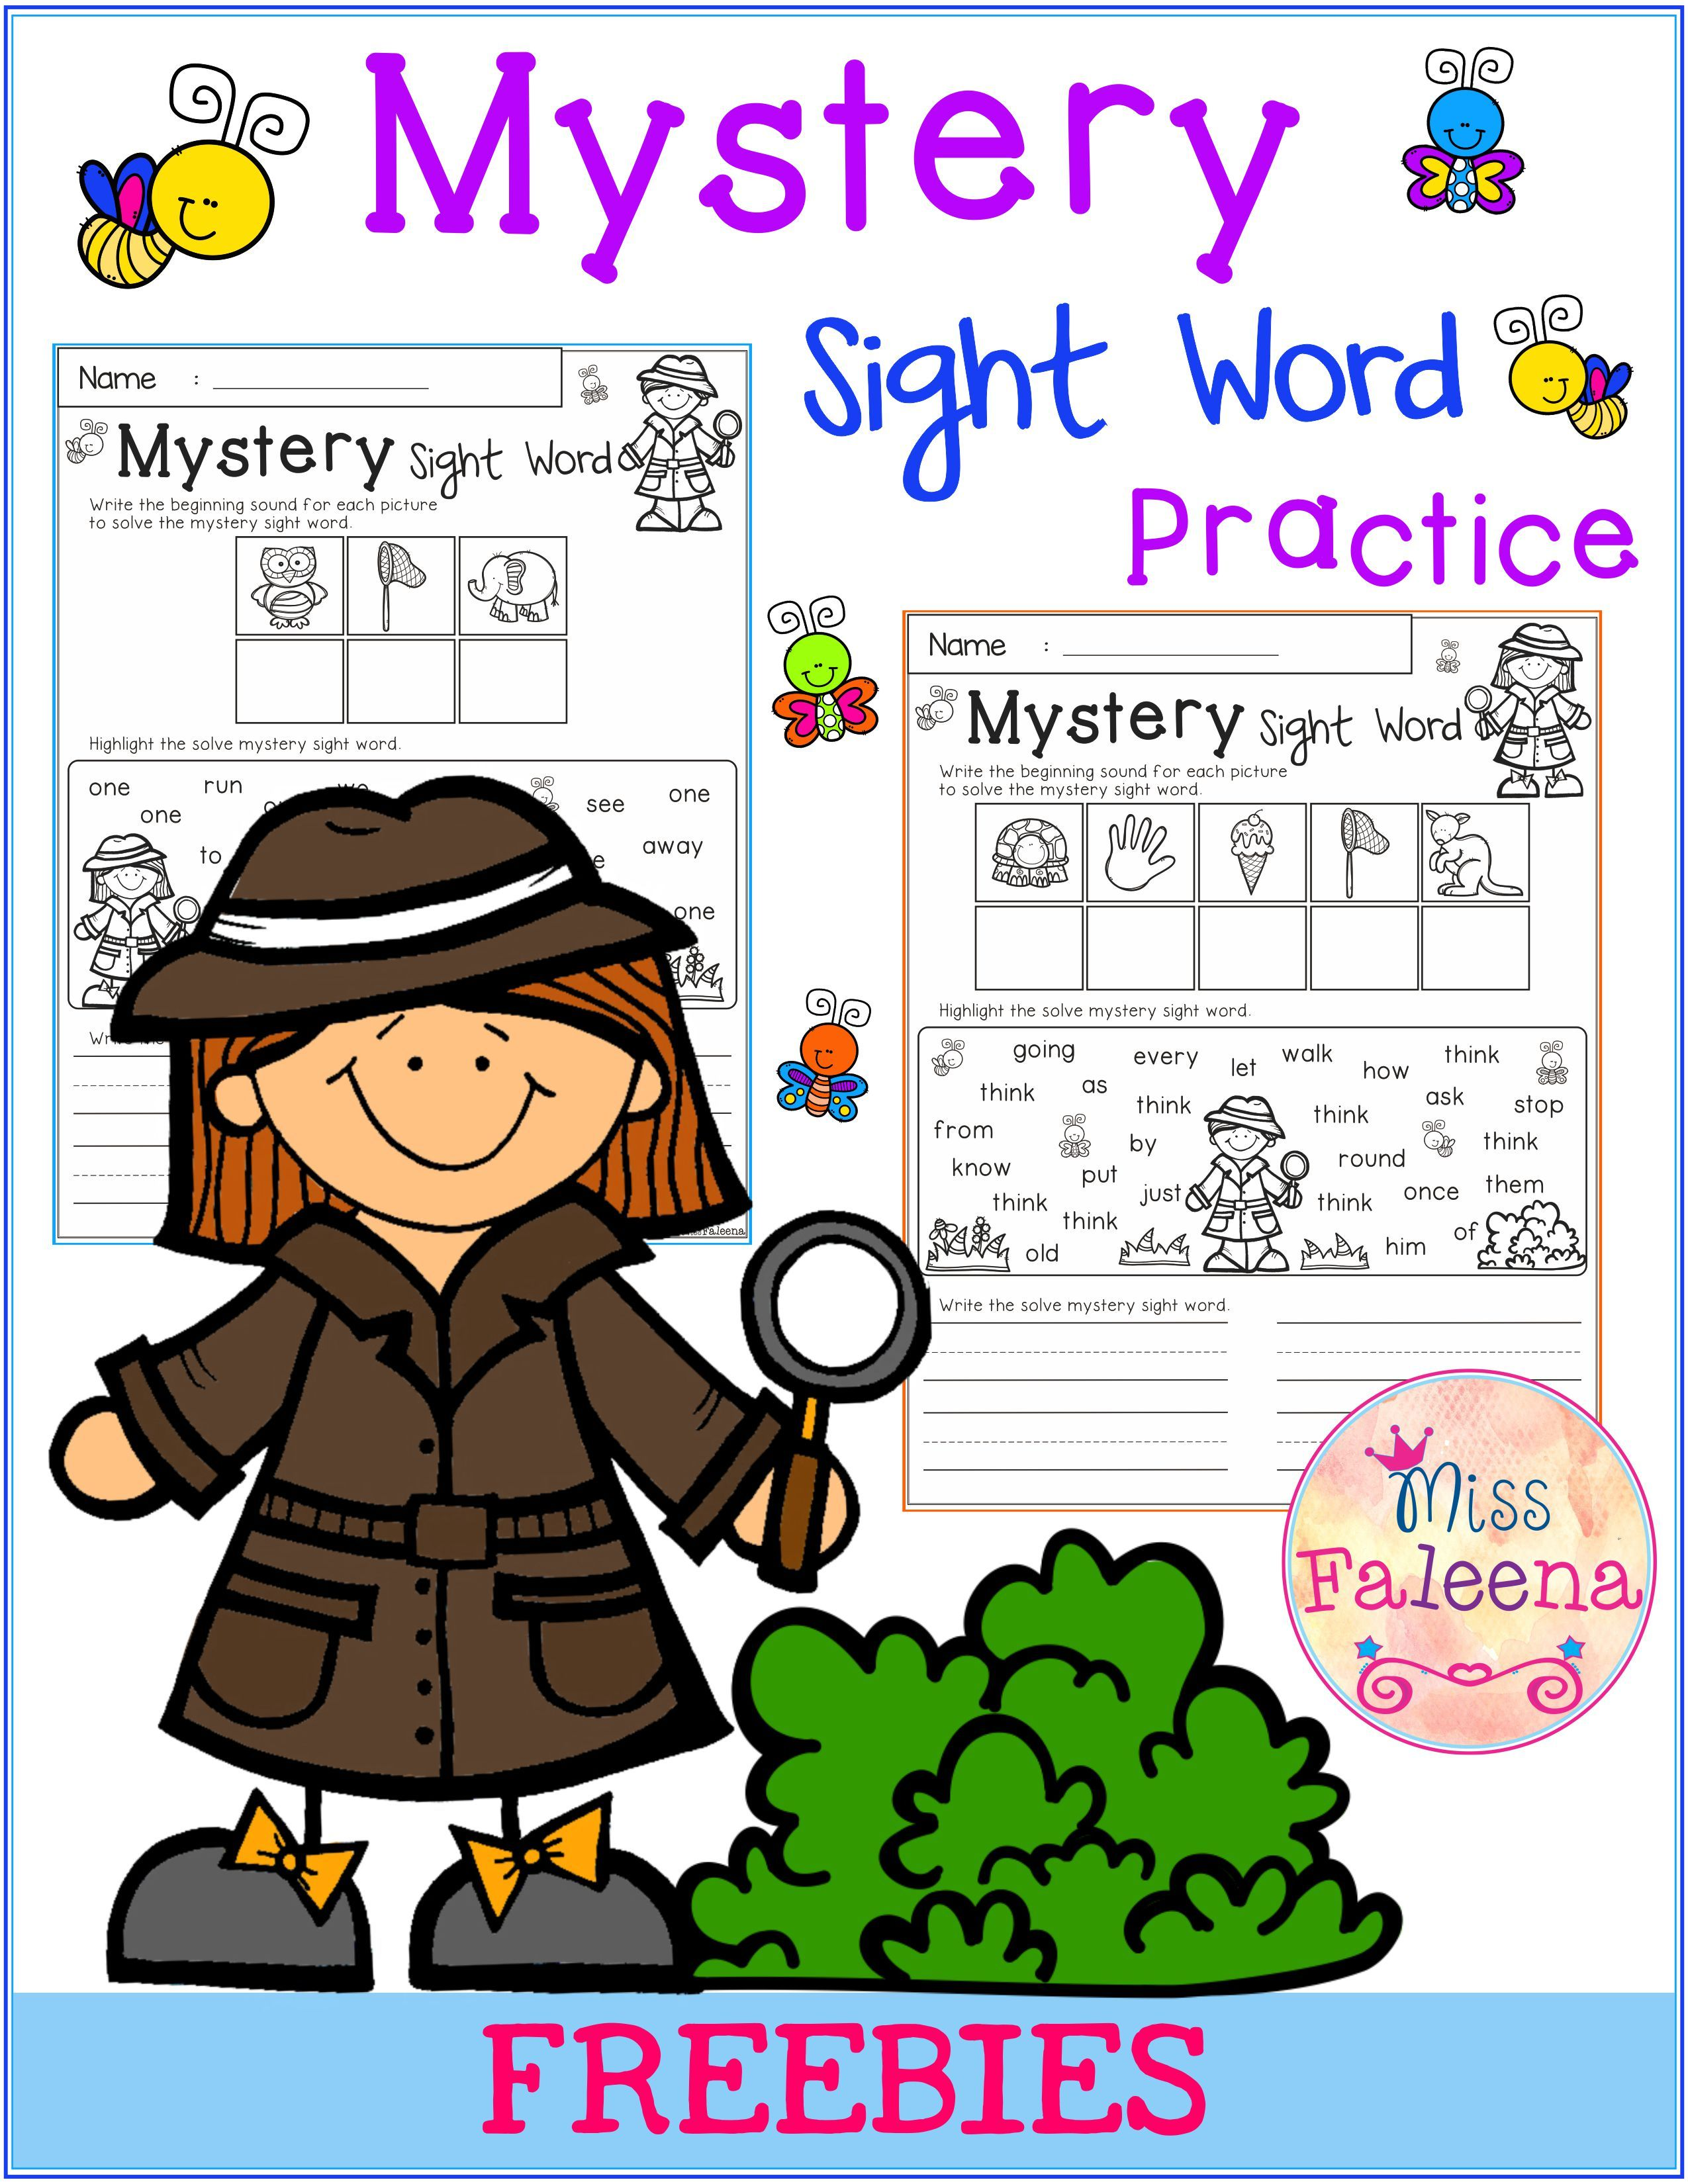 Free Mystery Sight Word Practice With Images